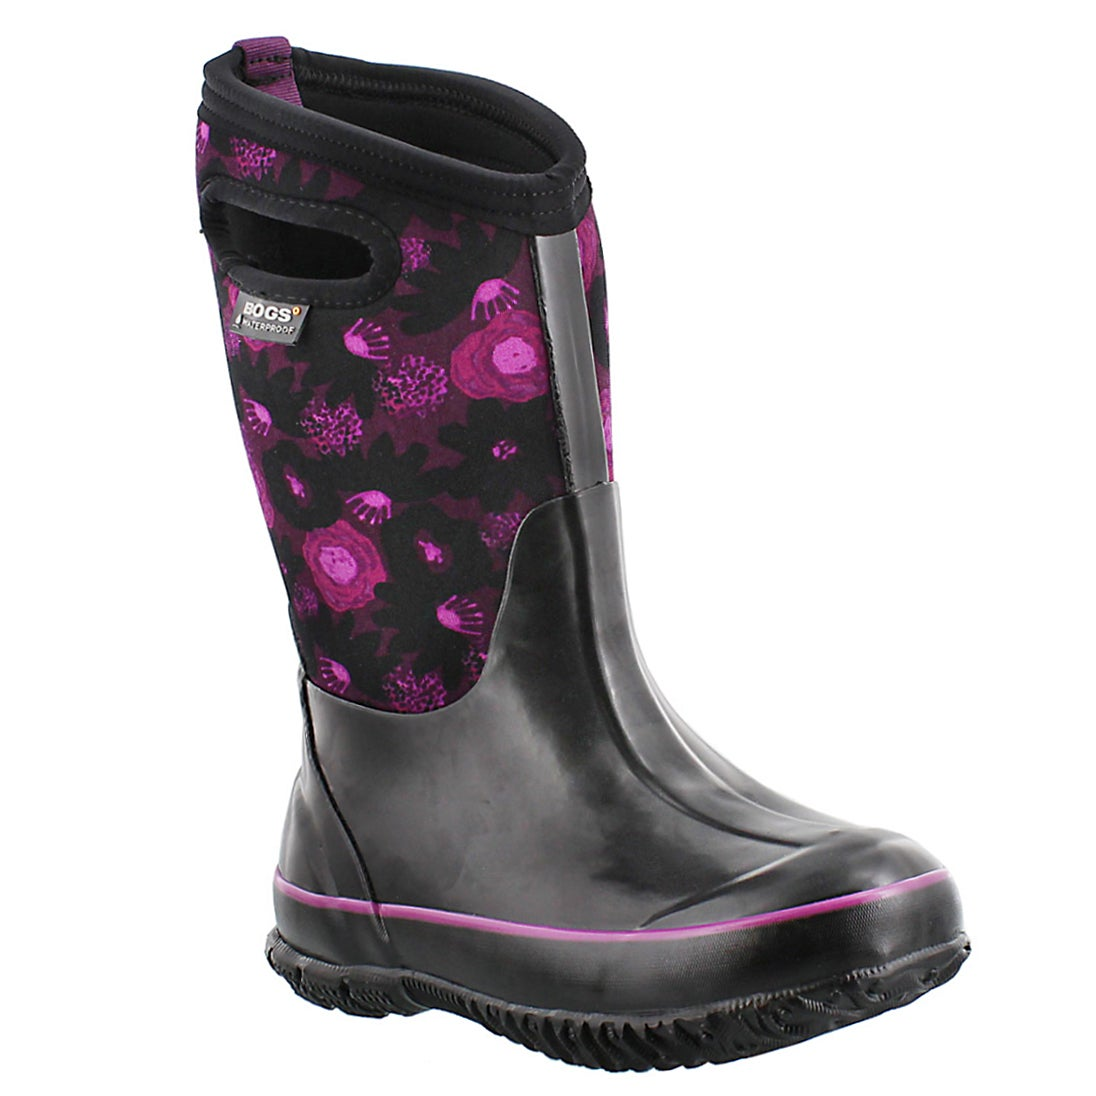 Girls' CLASSIC WATERCOLOR black waterproof boots